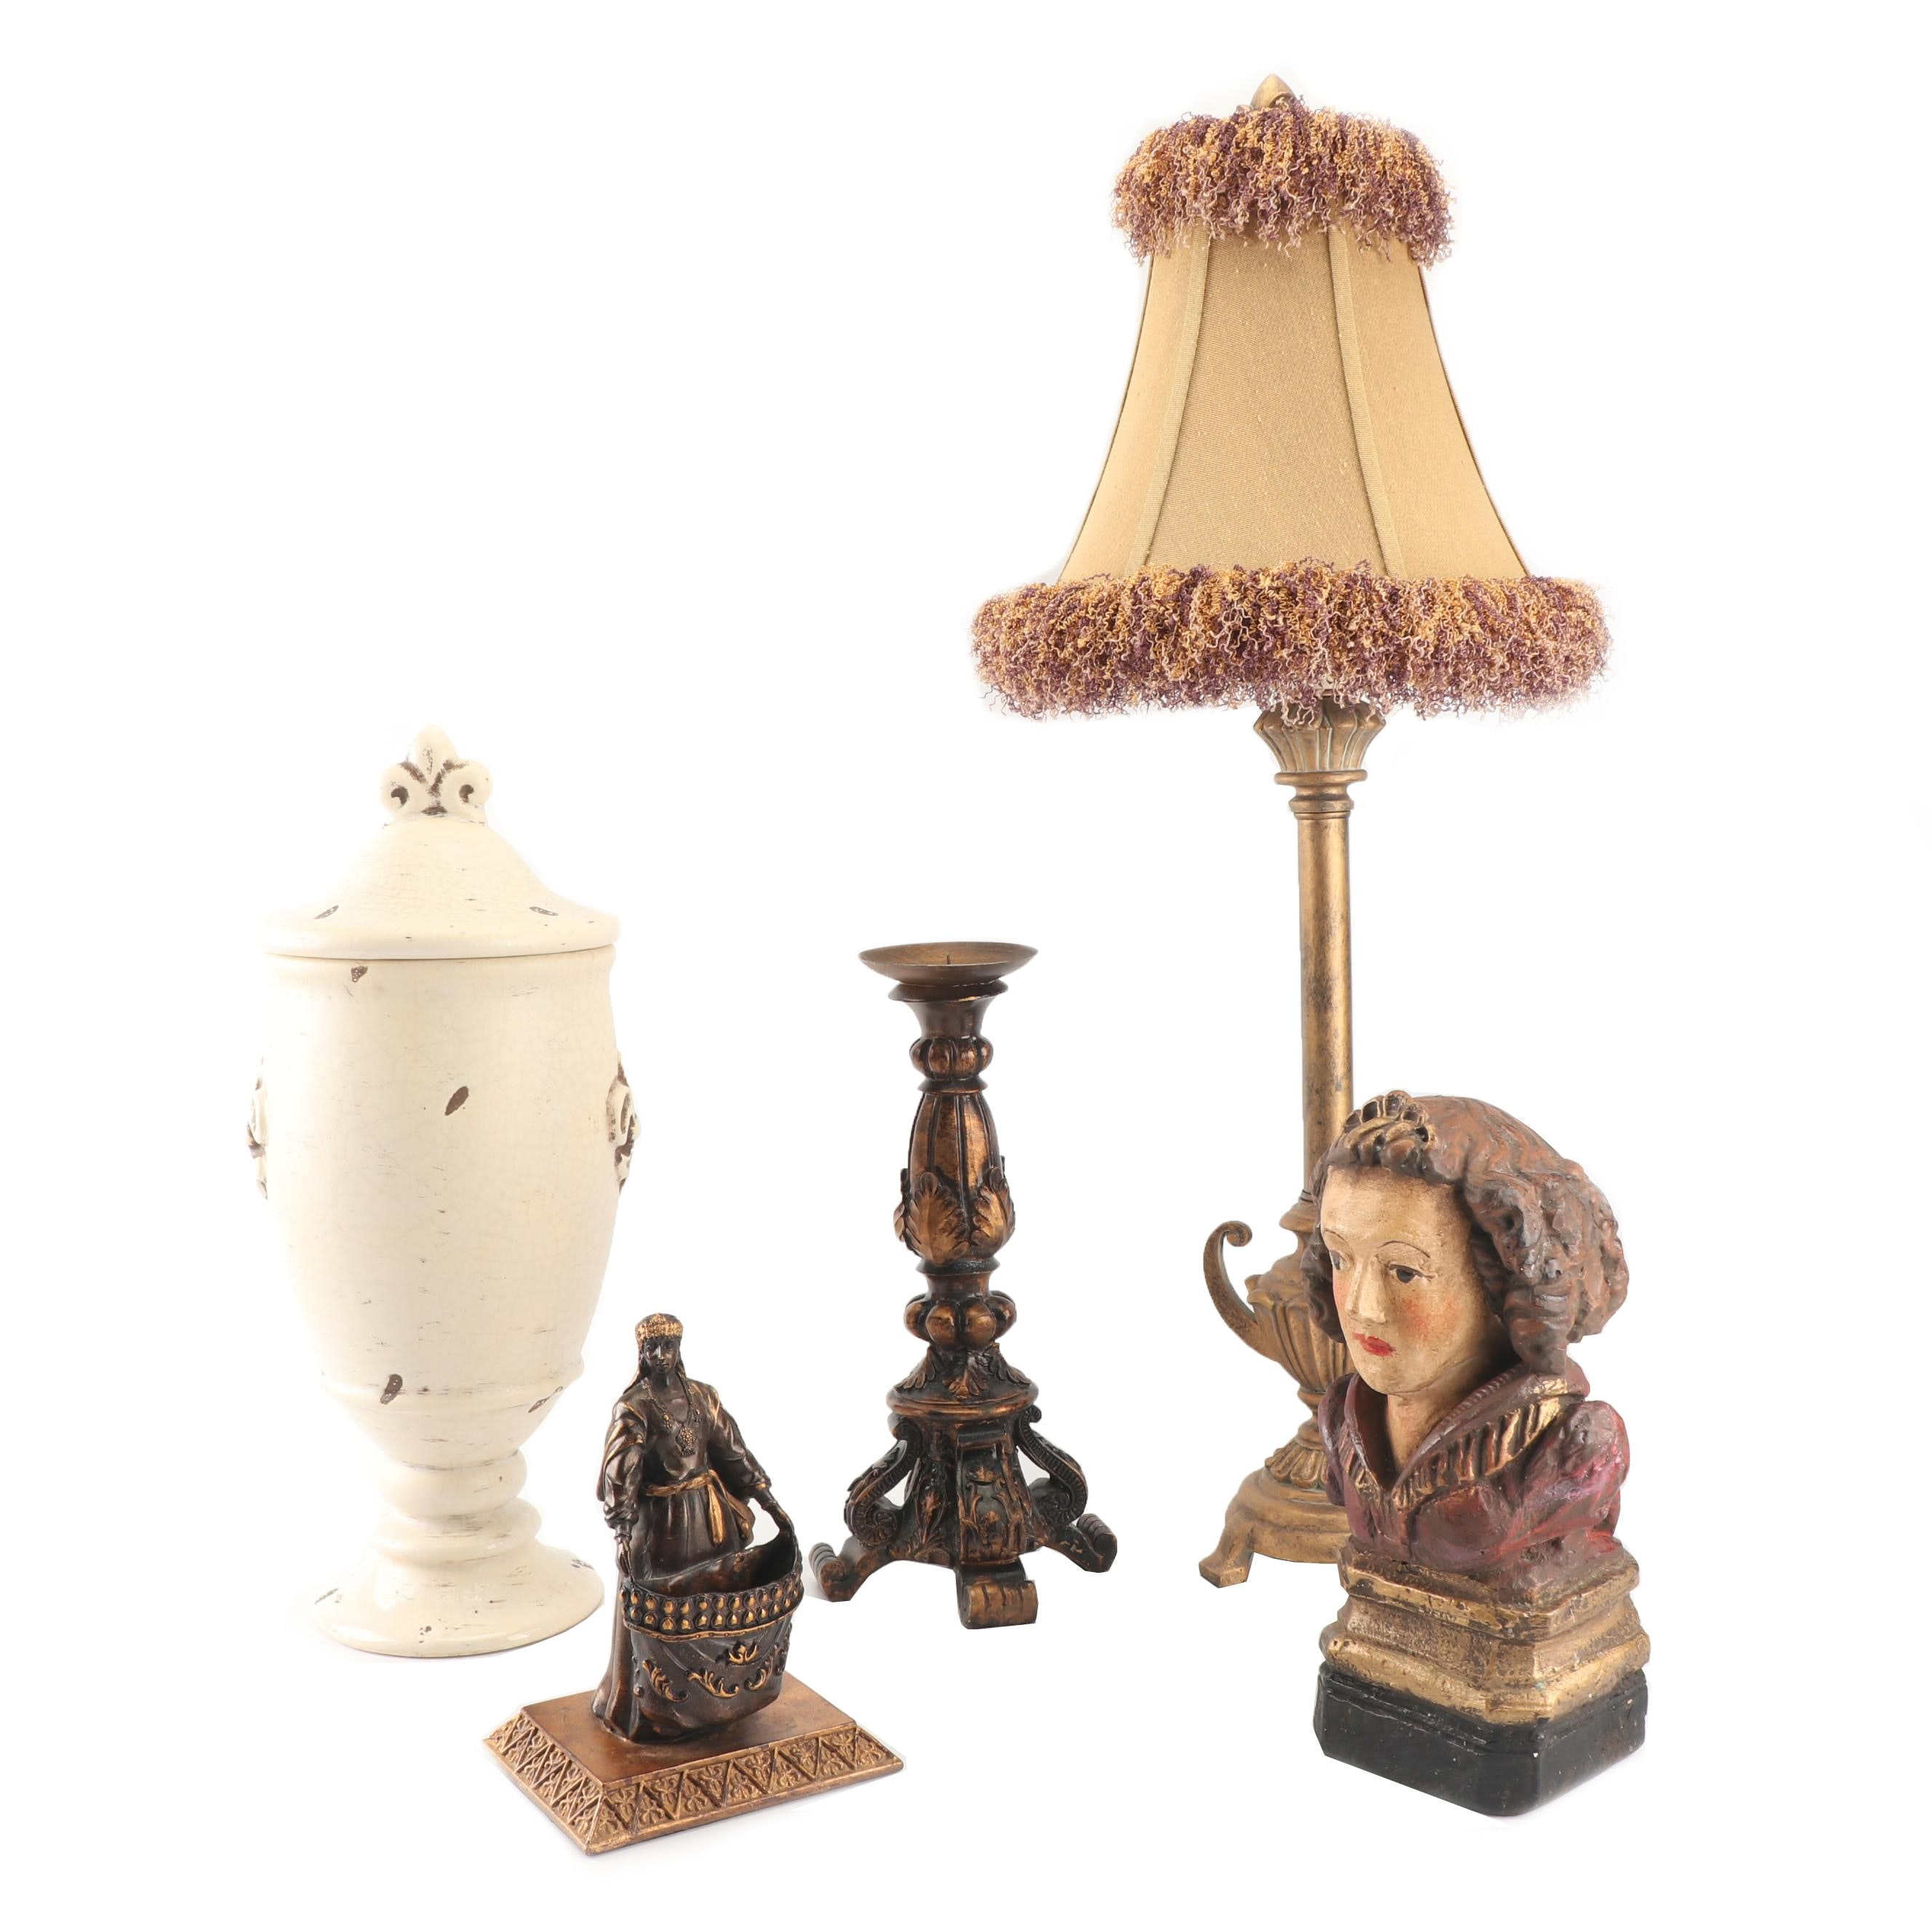 Gilt Finish Trophy Table Lamp and Home Decor